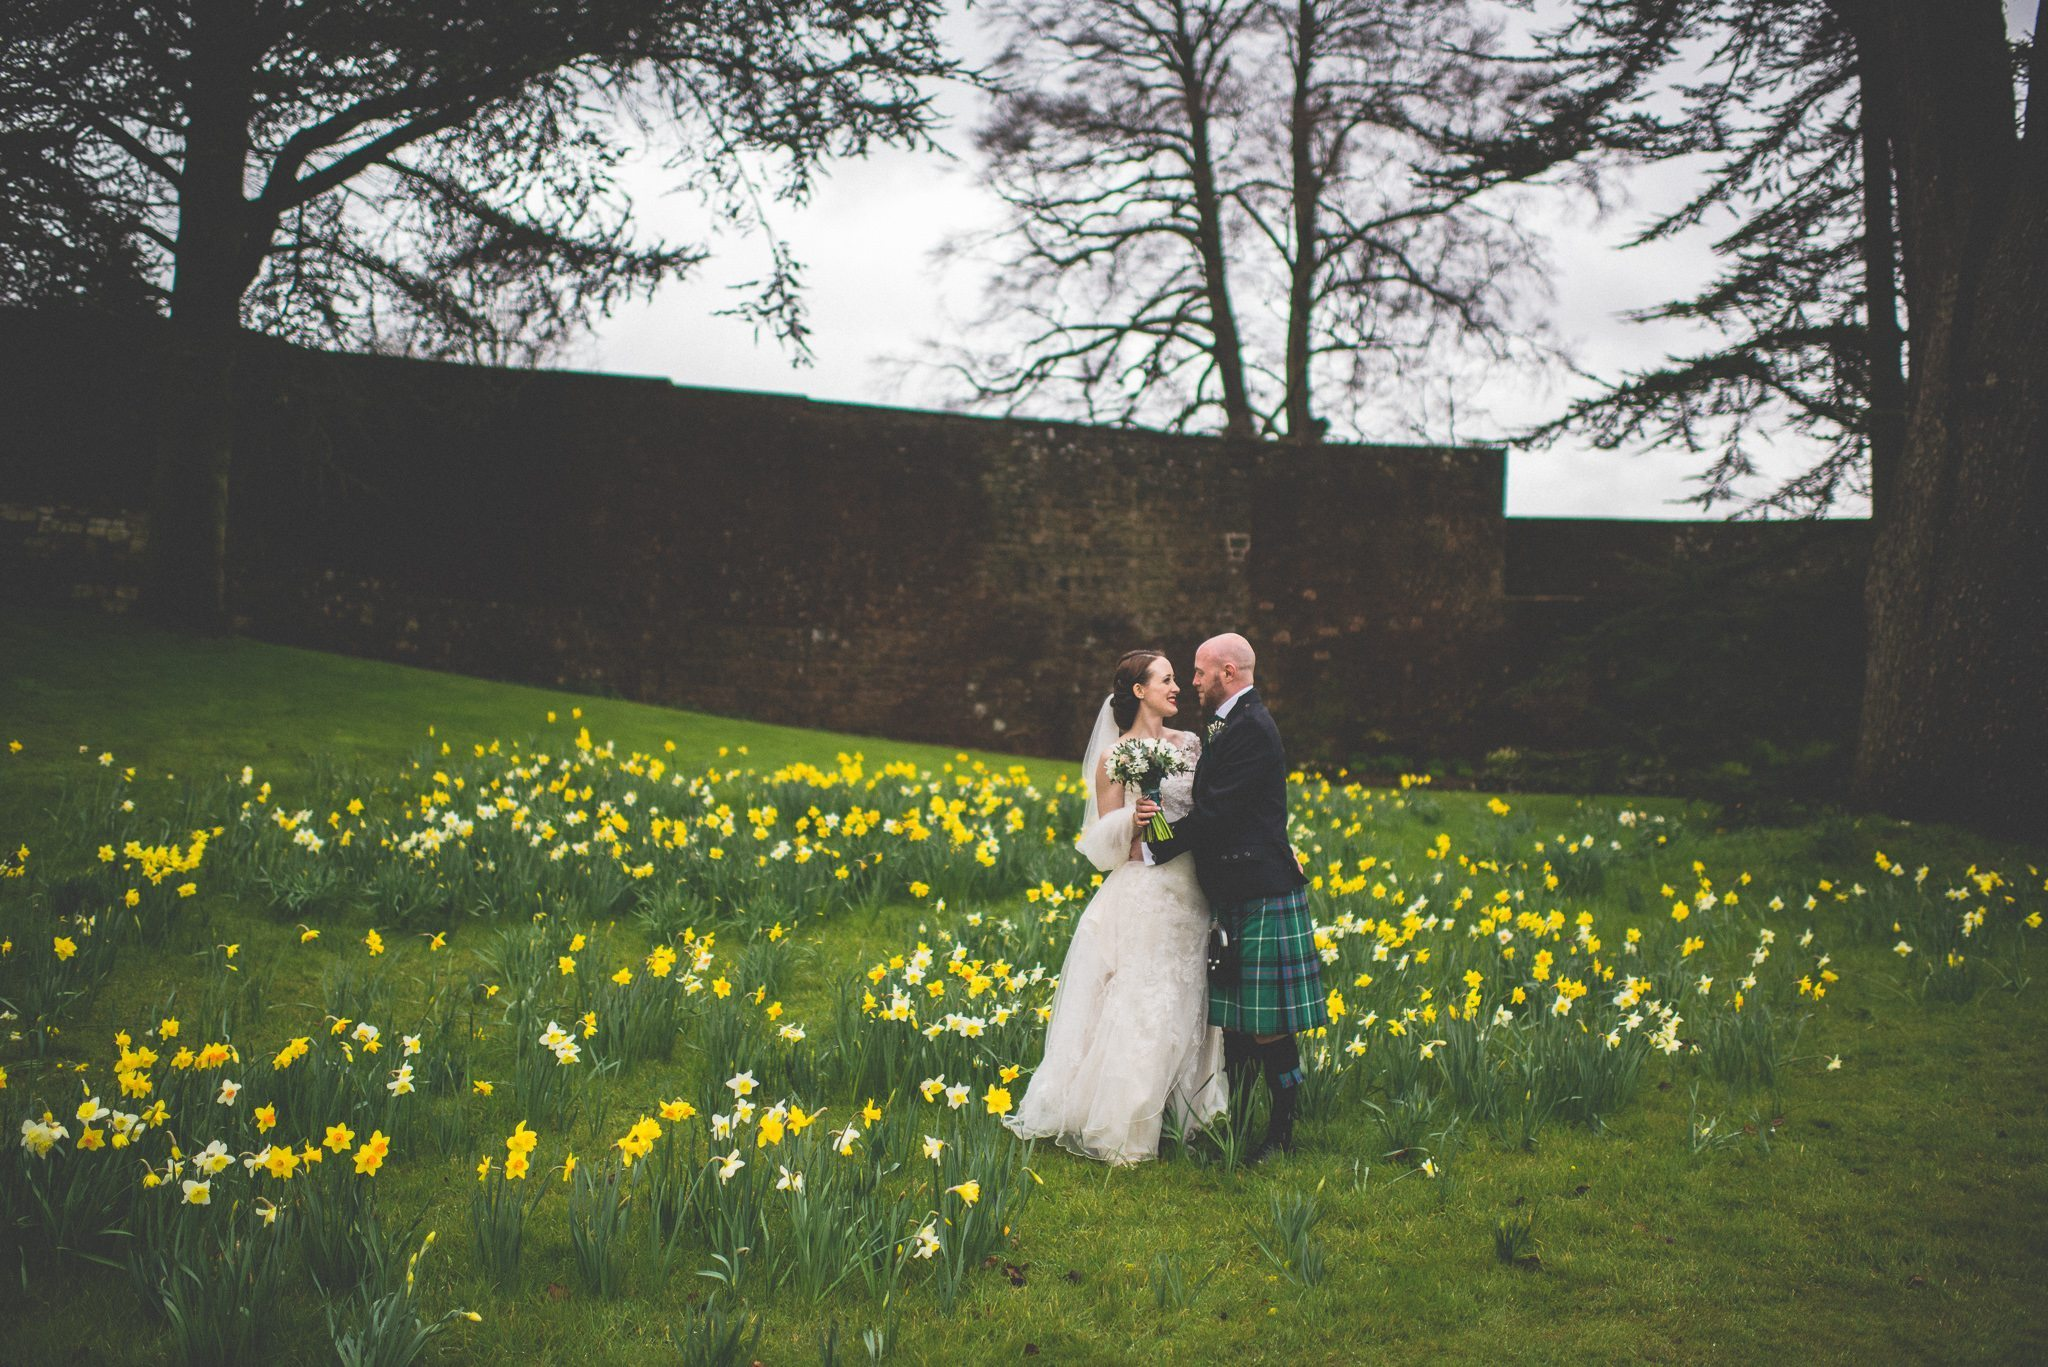 Scottish Bride and Groom stand surrounded by Daffodils in the grounds of Farnham Castle